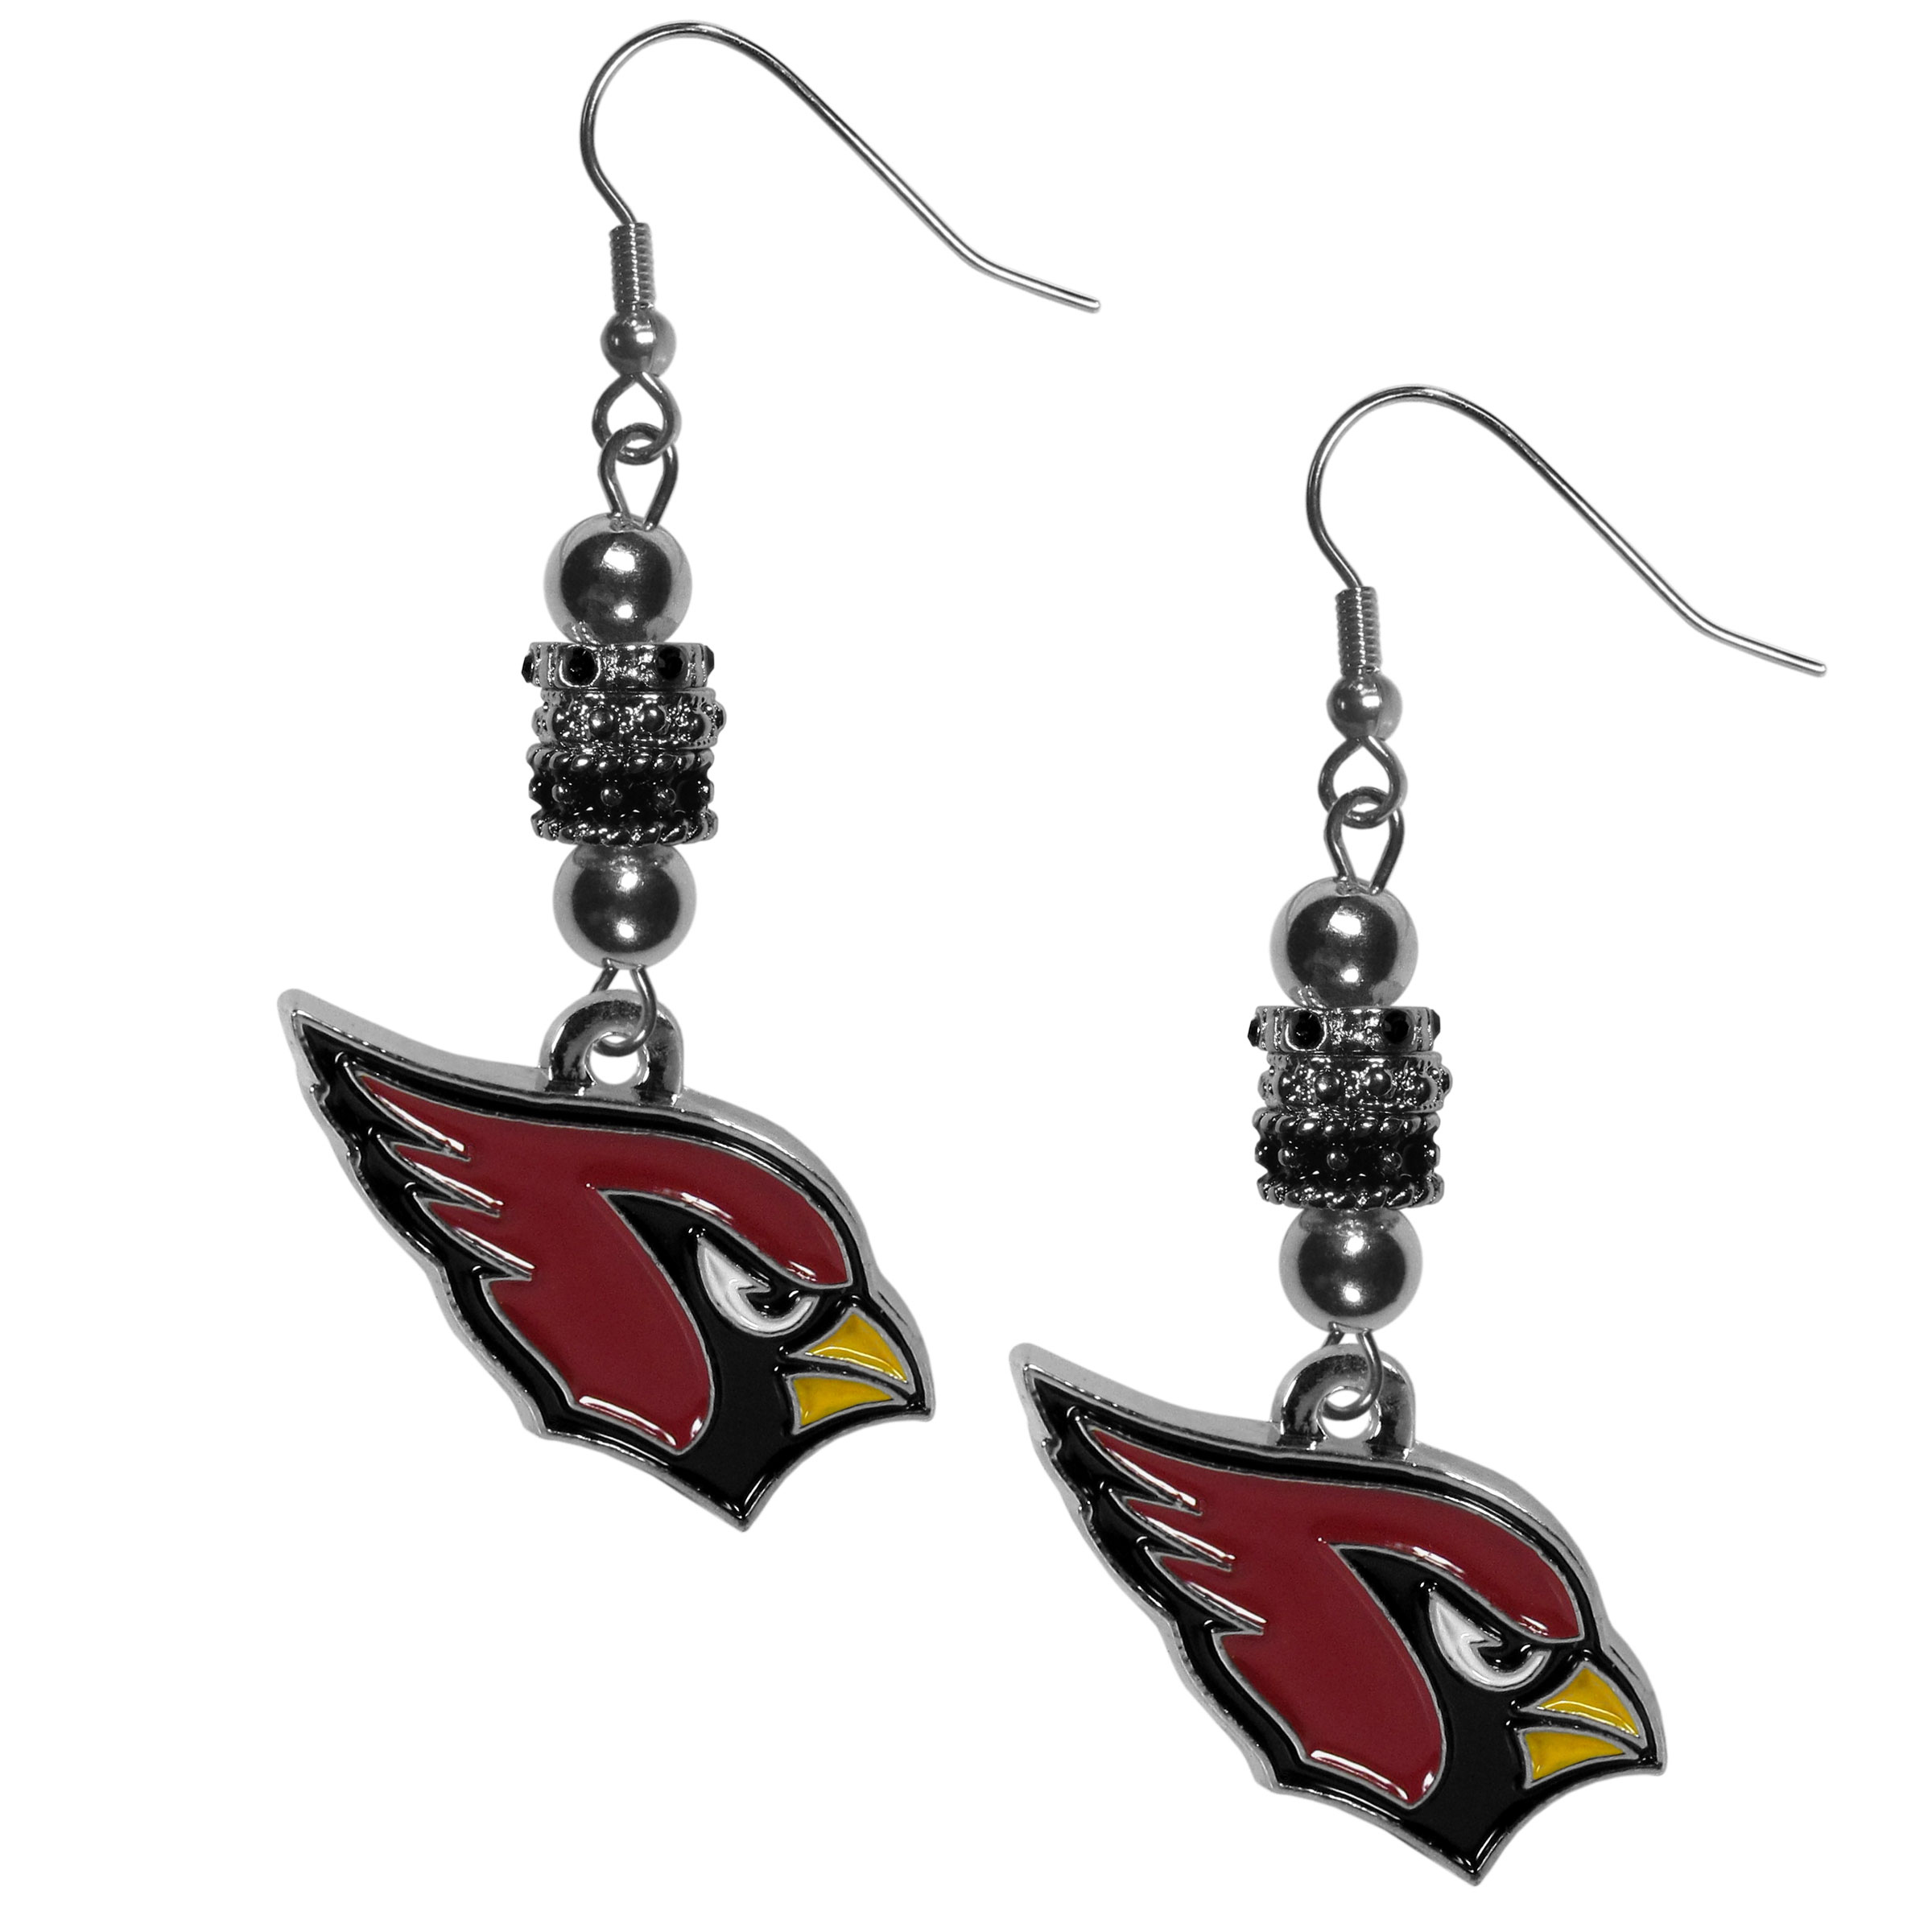 Arizona Cardinals Euro Bead Earrings - These beautiful euro style earrings feature 3 euro beads and a detailed Arizona Cardinals charm on hypoallergenic fishhook posts.